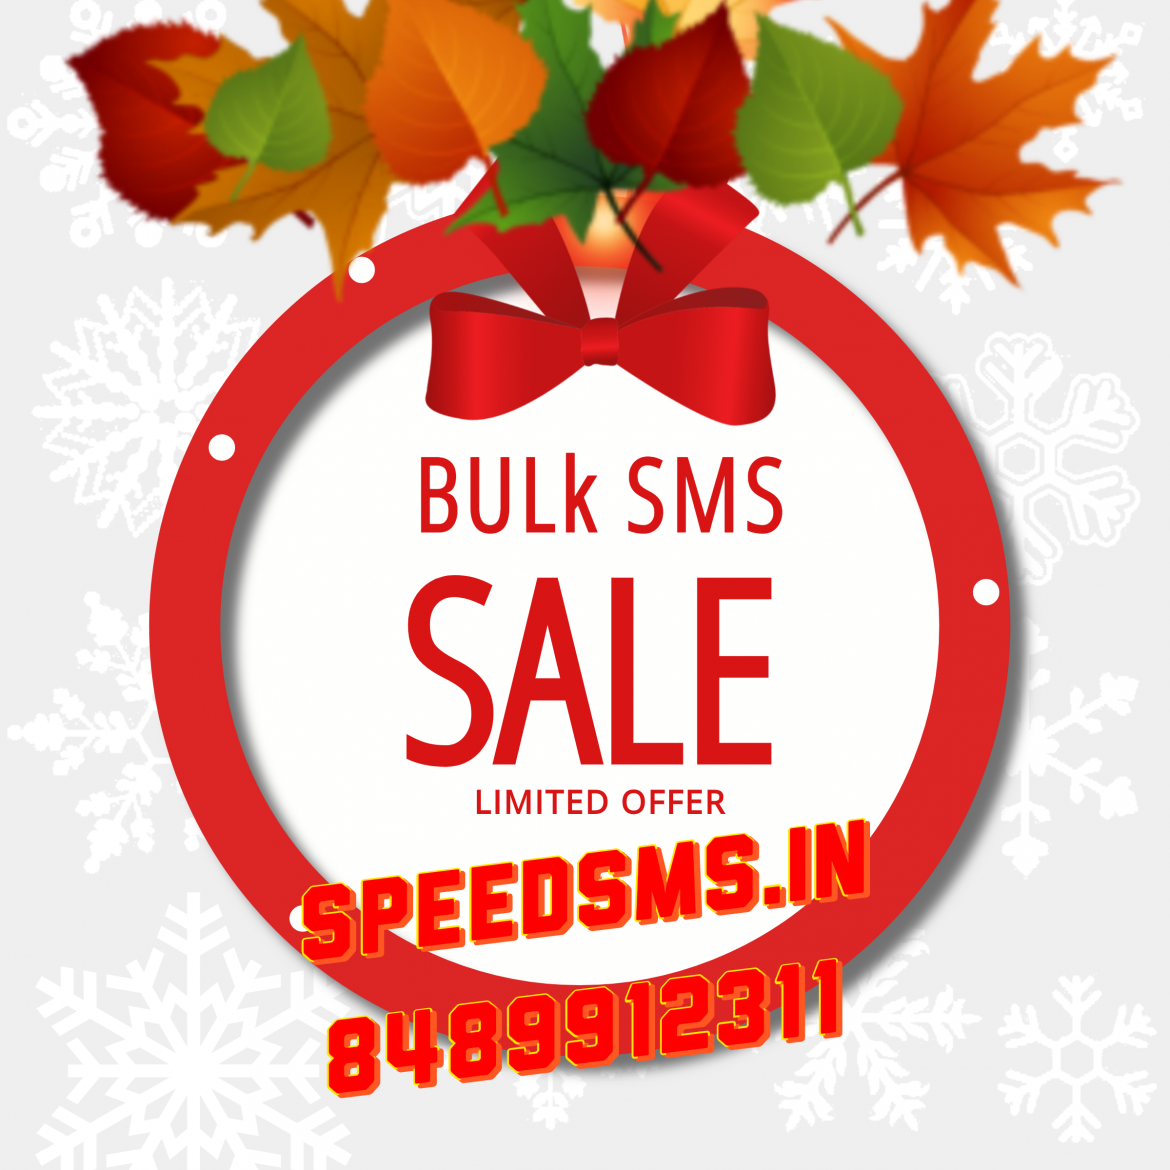 Advanced Bulk SMS Services In Bangalore